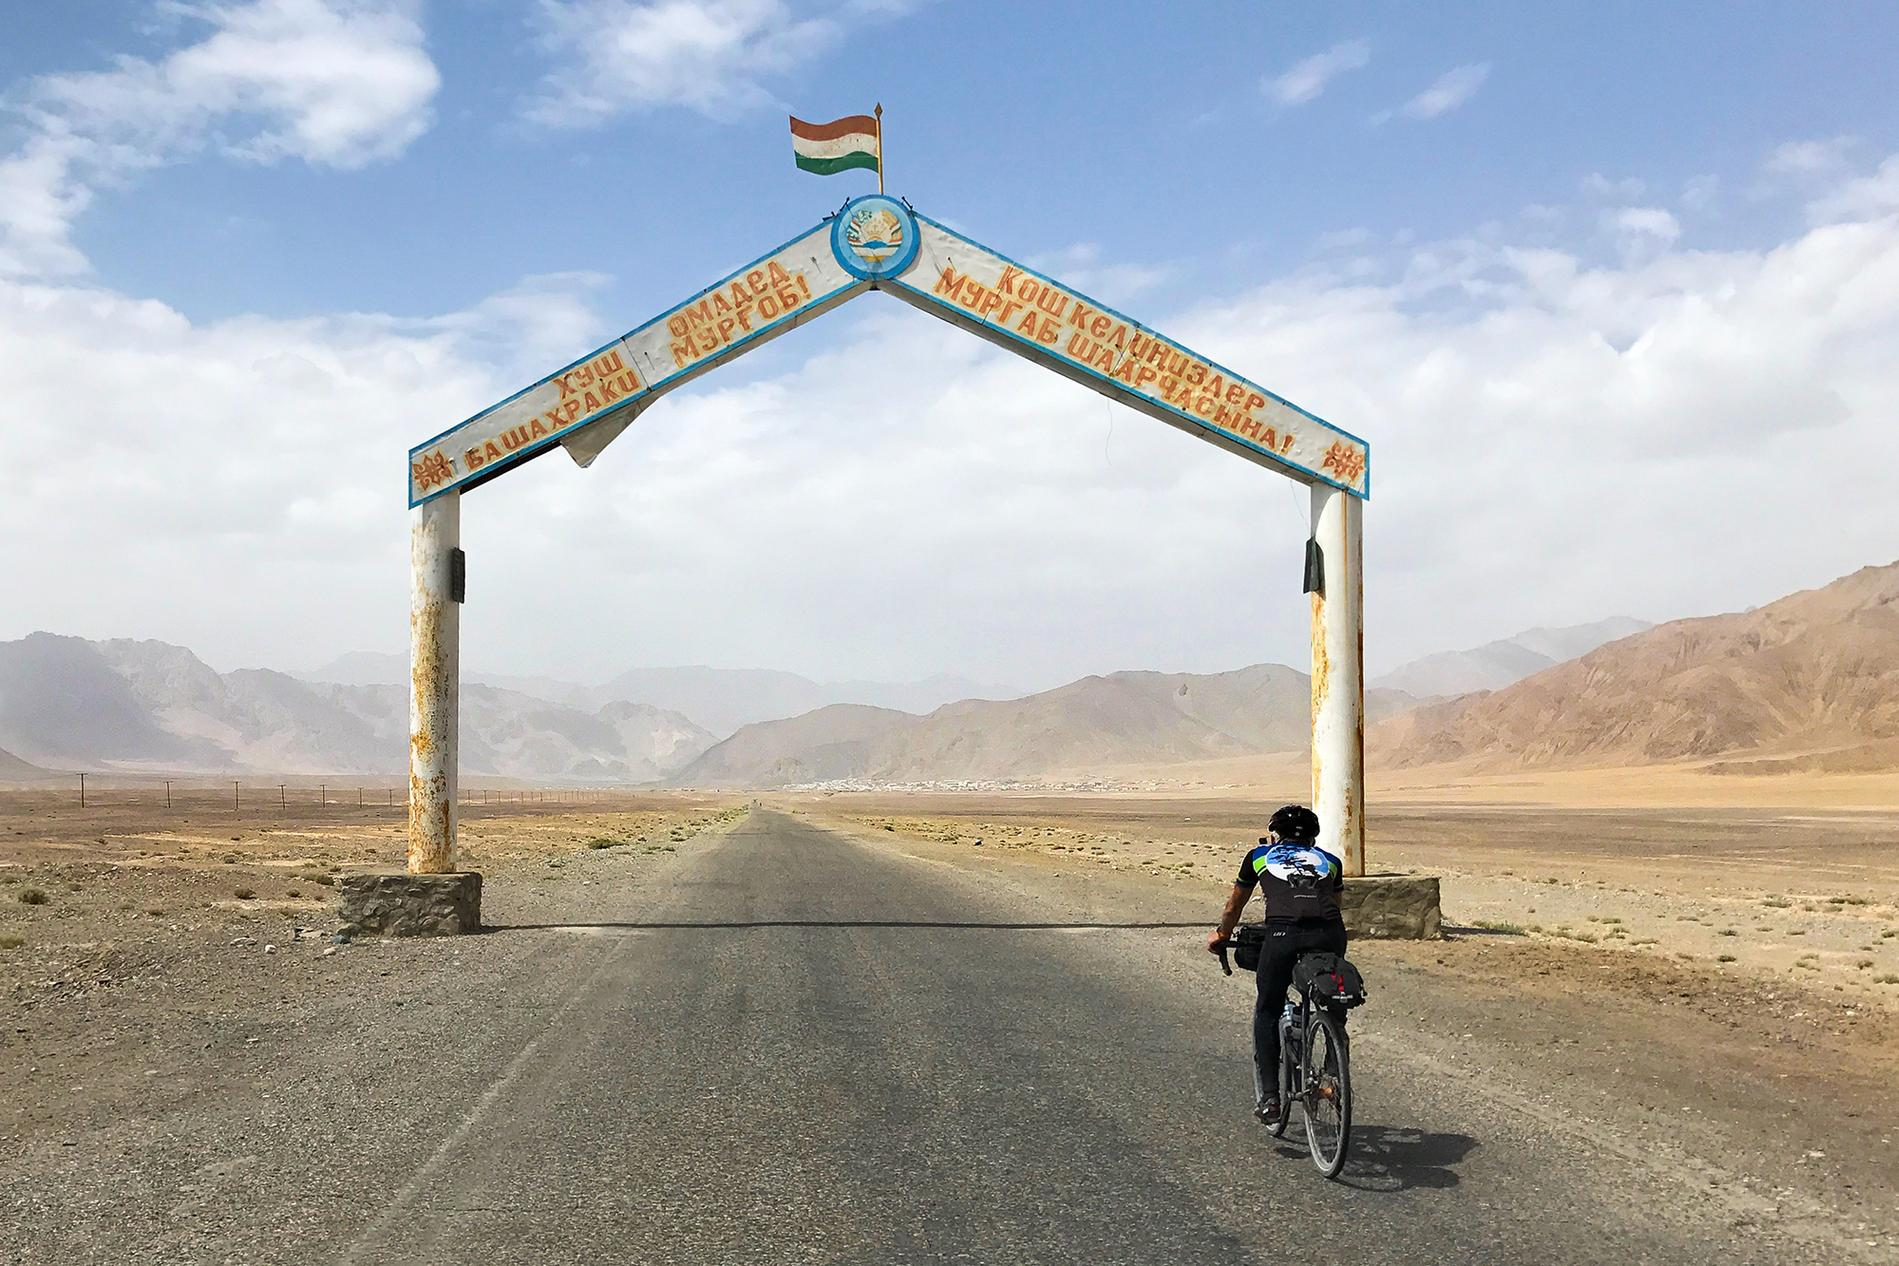 Riding through the Murghab city entrance gate. It was like a scene out of Star Wars.